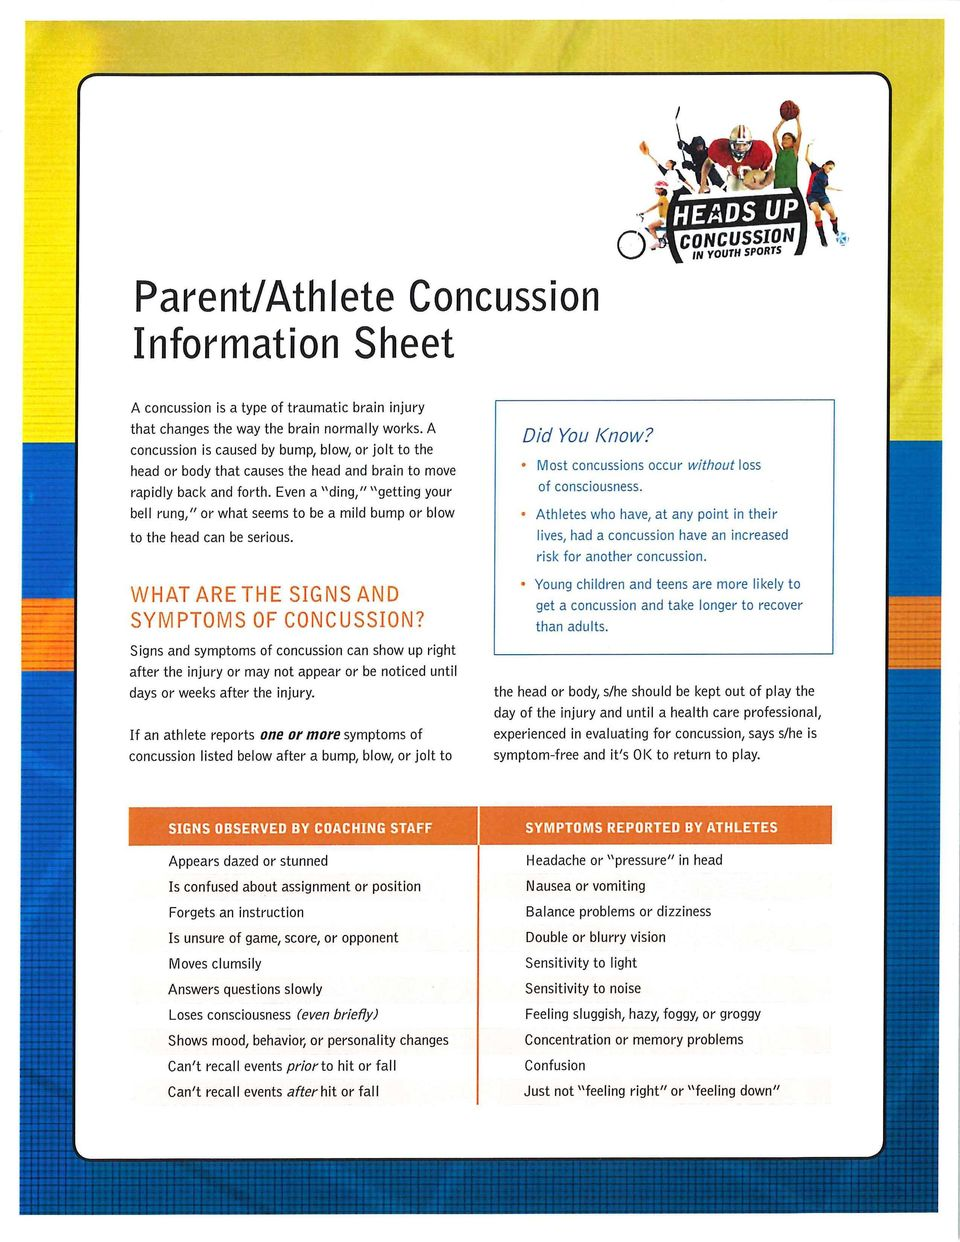 "Even a ""ding,"" ""getting your bell rung,"" or what seems to be a mild bump or blow to the head can be serious. WHAT ARE THE SIGNS AND SYMPTOWS OF CONCUSSION?"